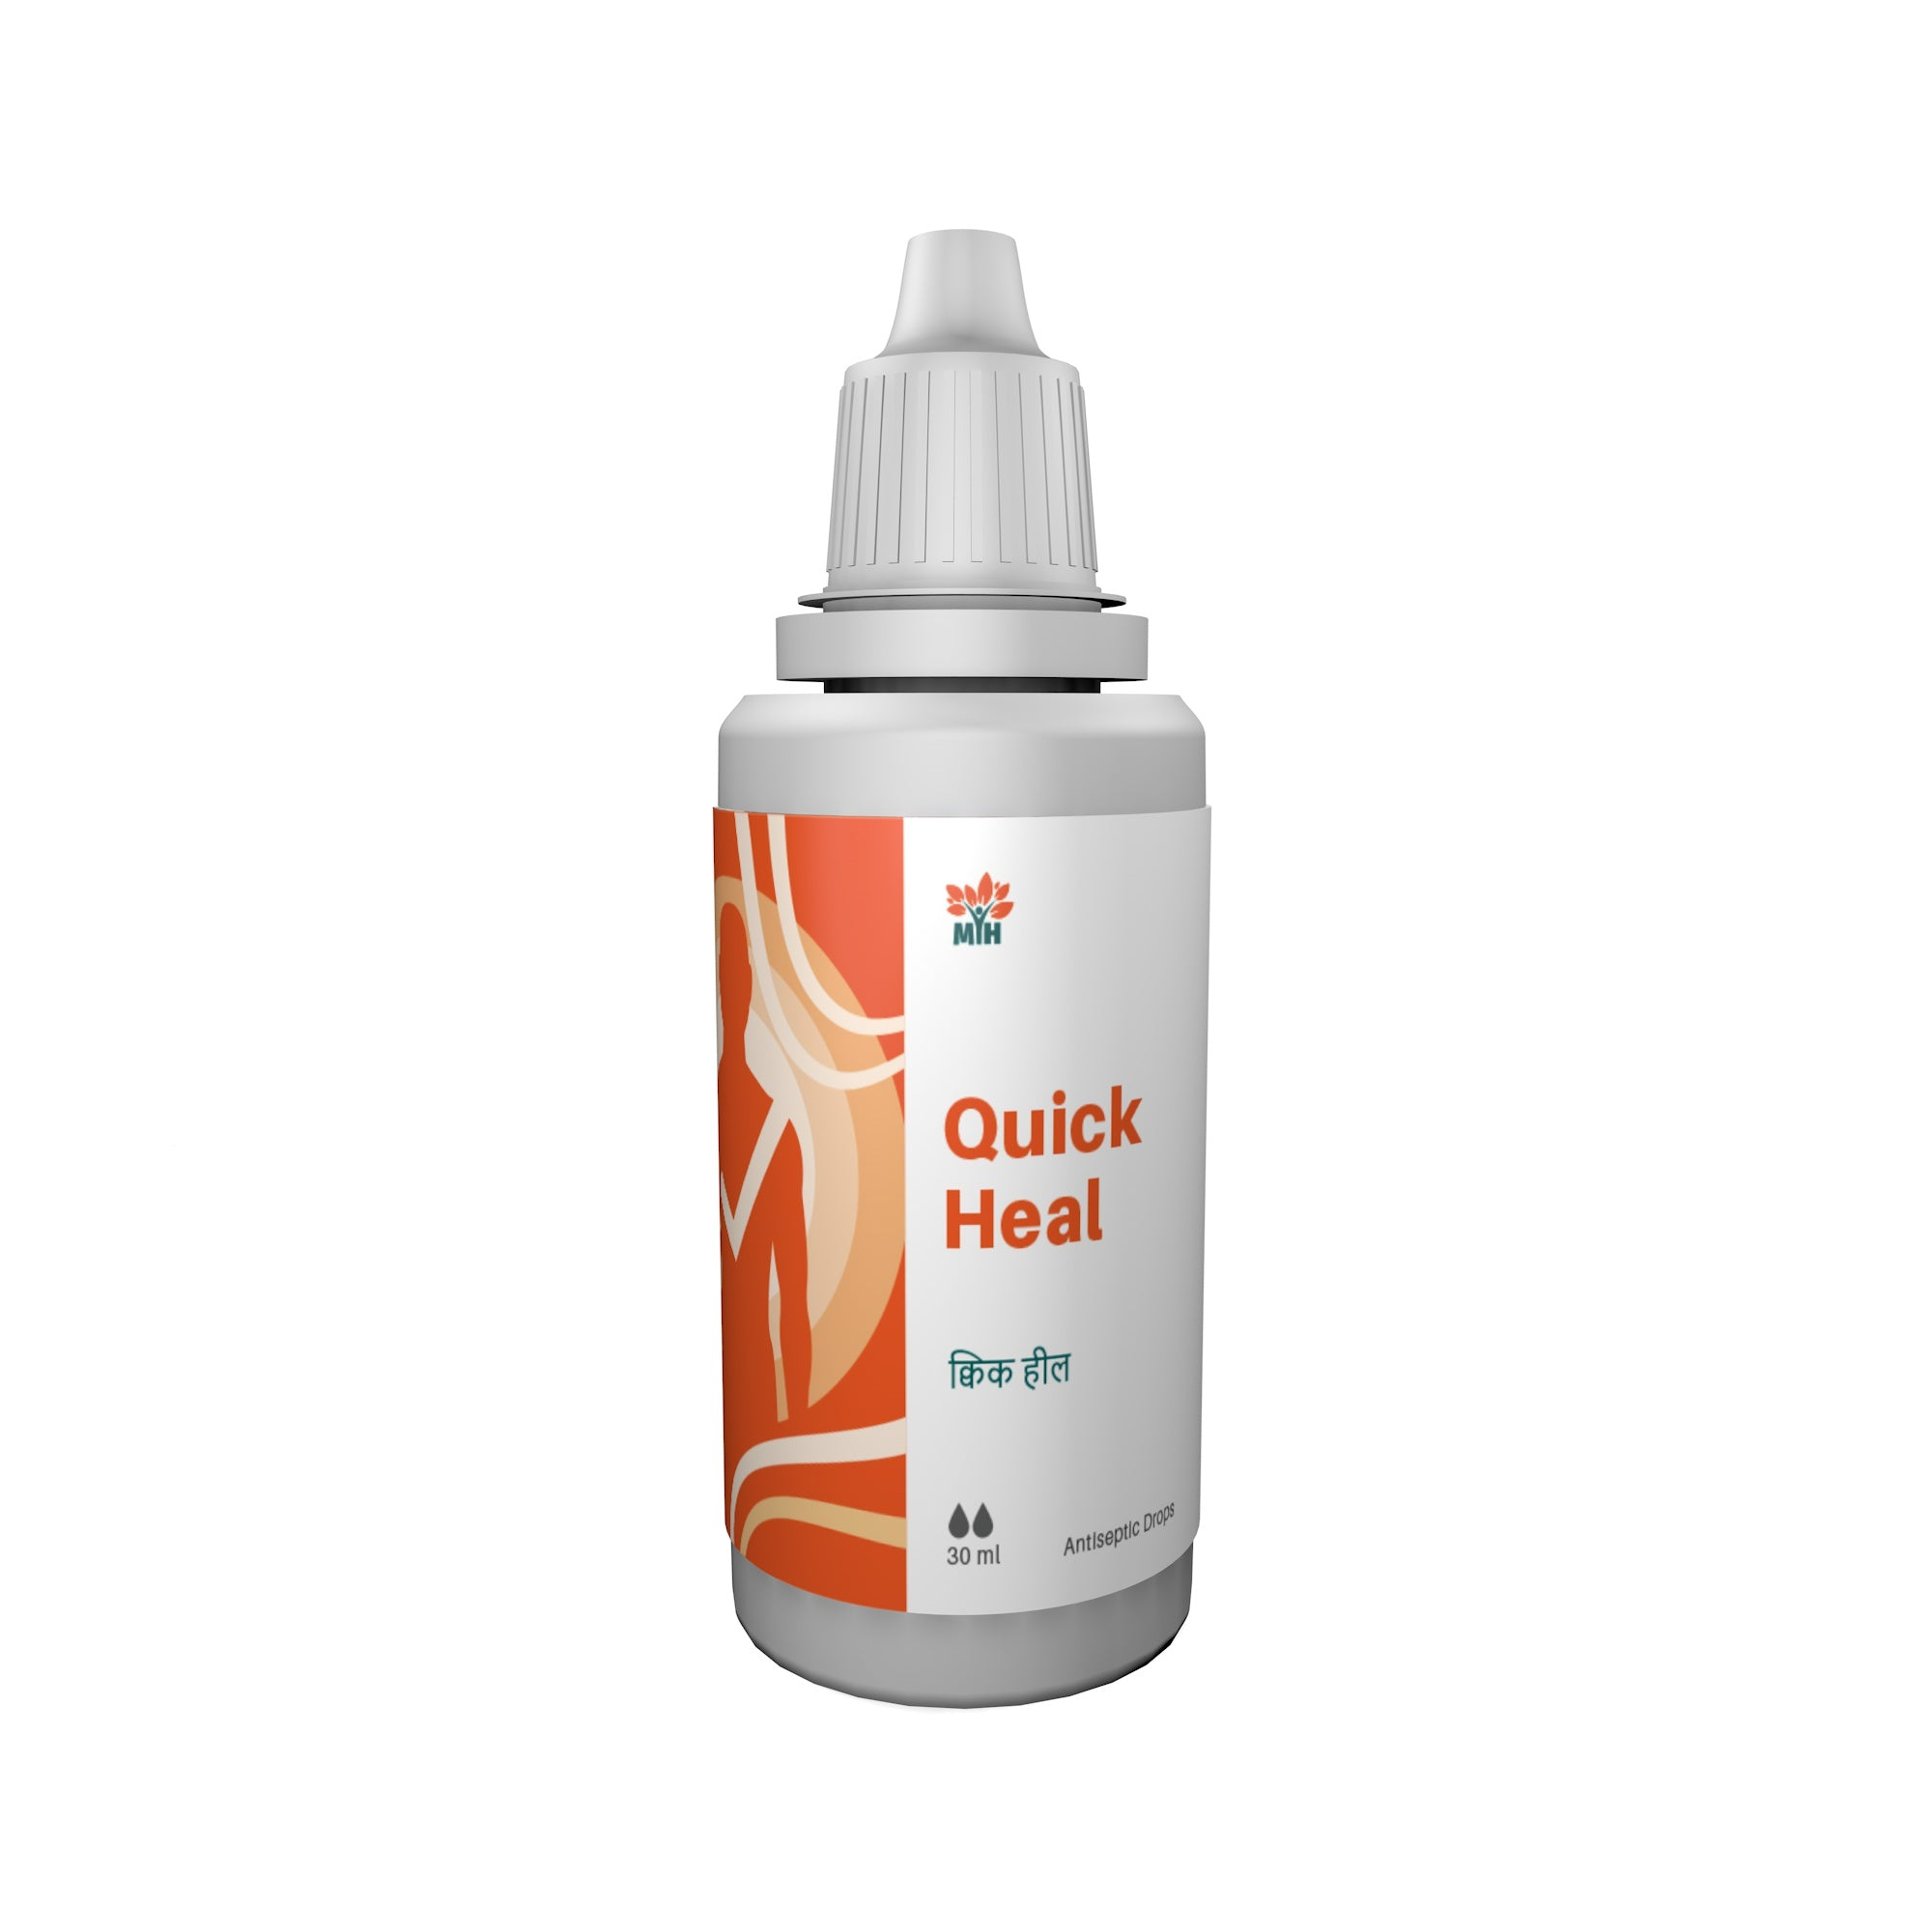 Mansar herbals Quick Heal Drops 30ml Mansar Quick Heal Oil has great wound healing properties and is useful in Blisters, Sinuses, Chronic Non-Healing Wounds and Ulcers. It can be applied over infected skin diseases, eczema,etc. It can also be used in the treatment of Cracked Heels,Cracked Nipples, External Hemorhoids & Anal Fissures.